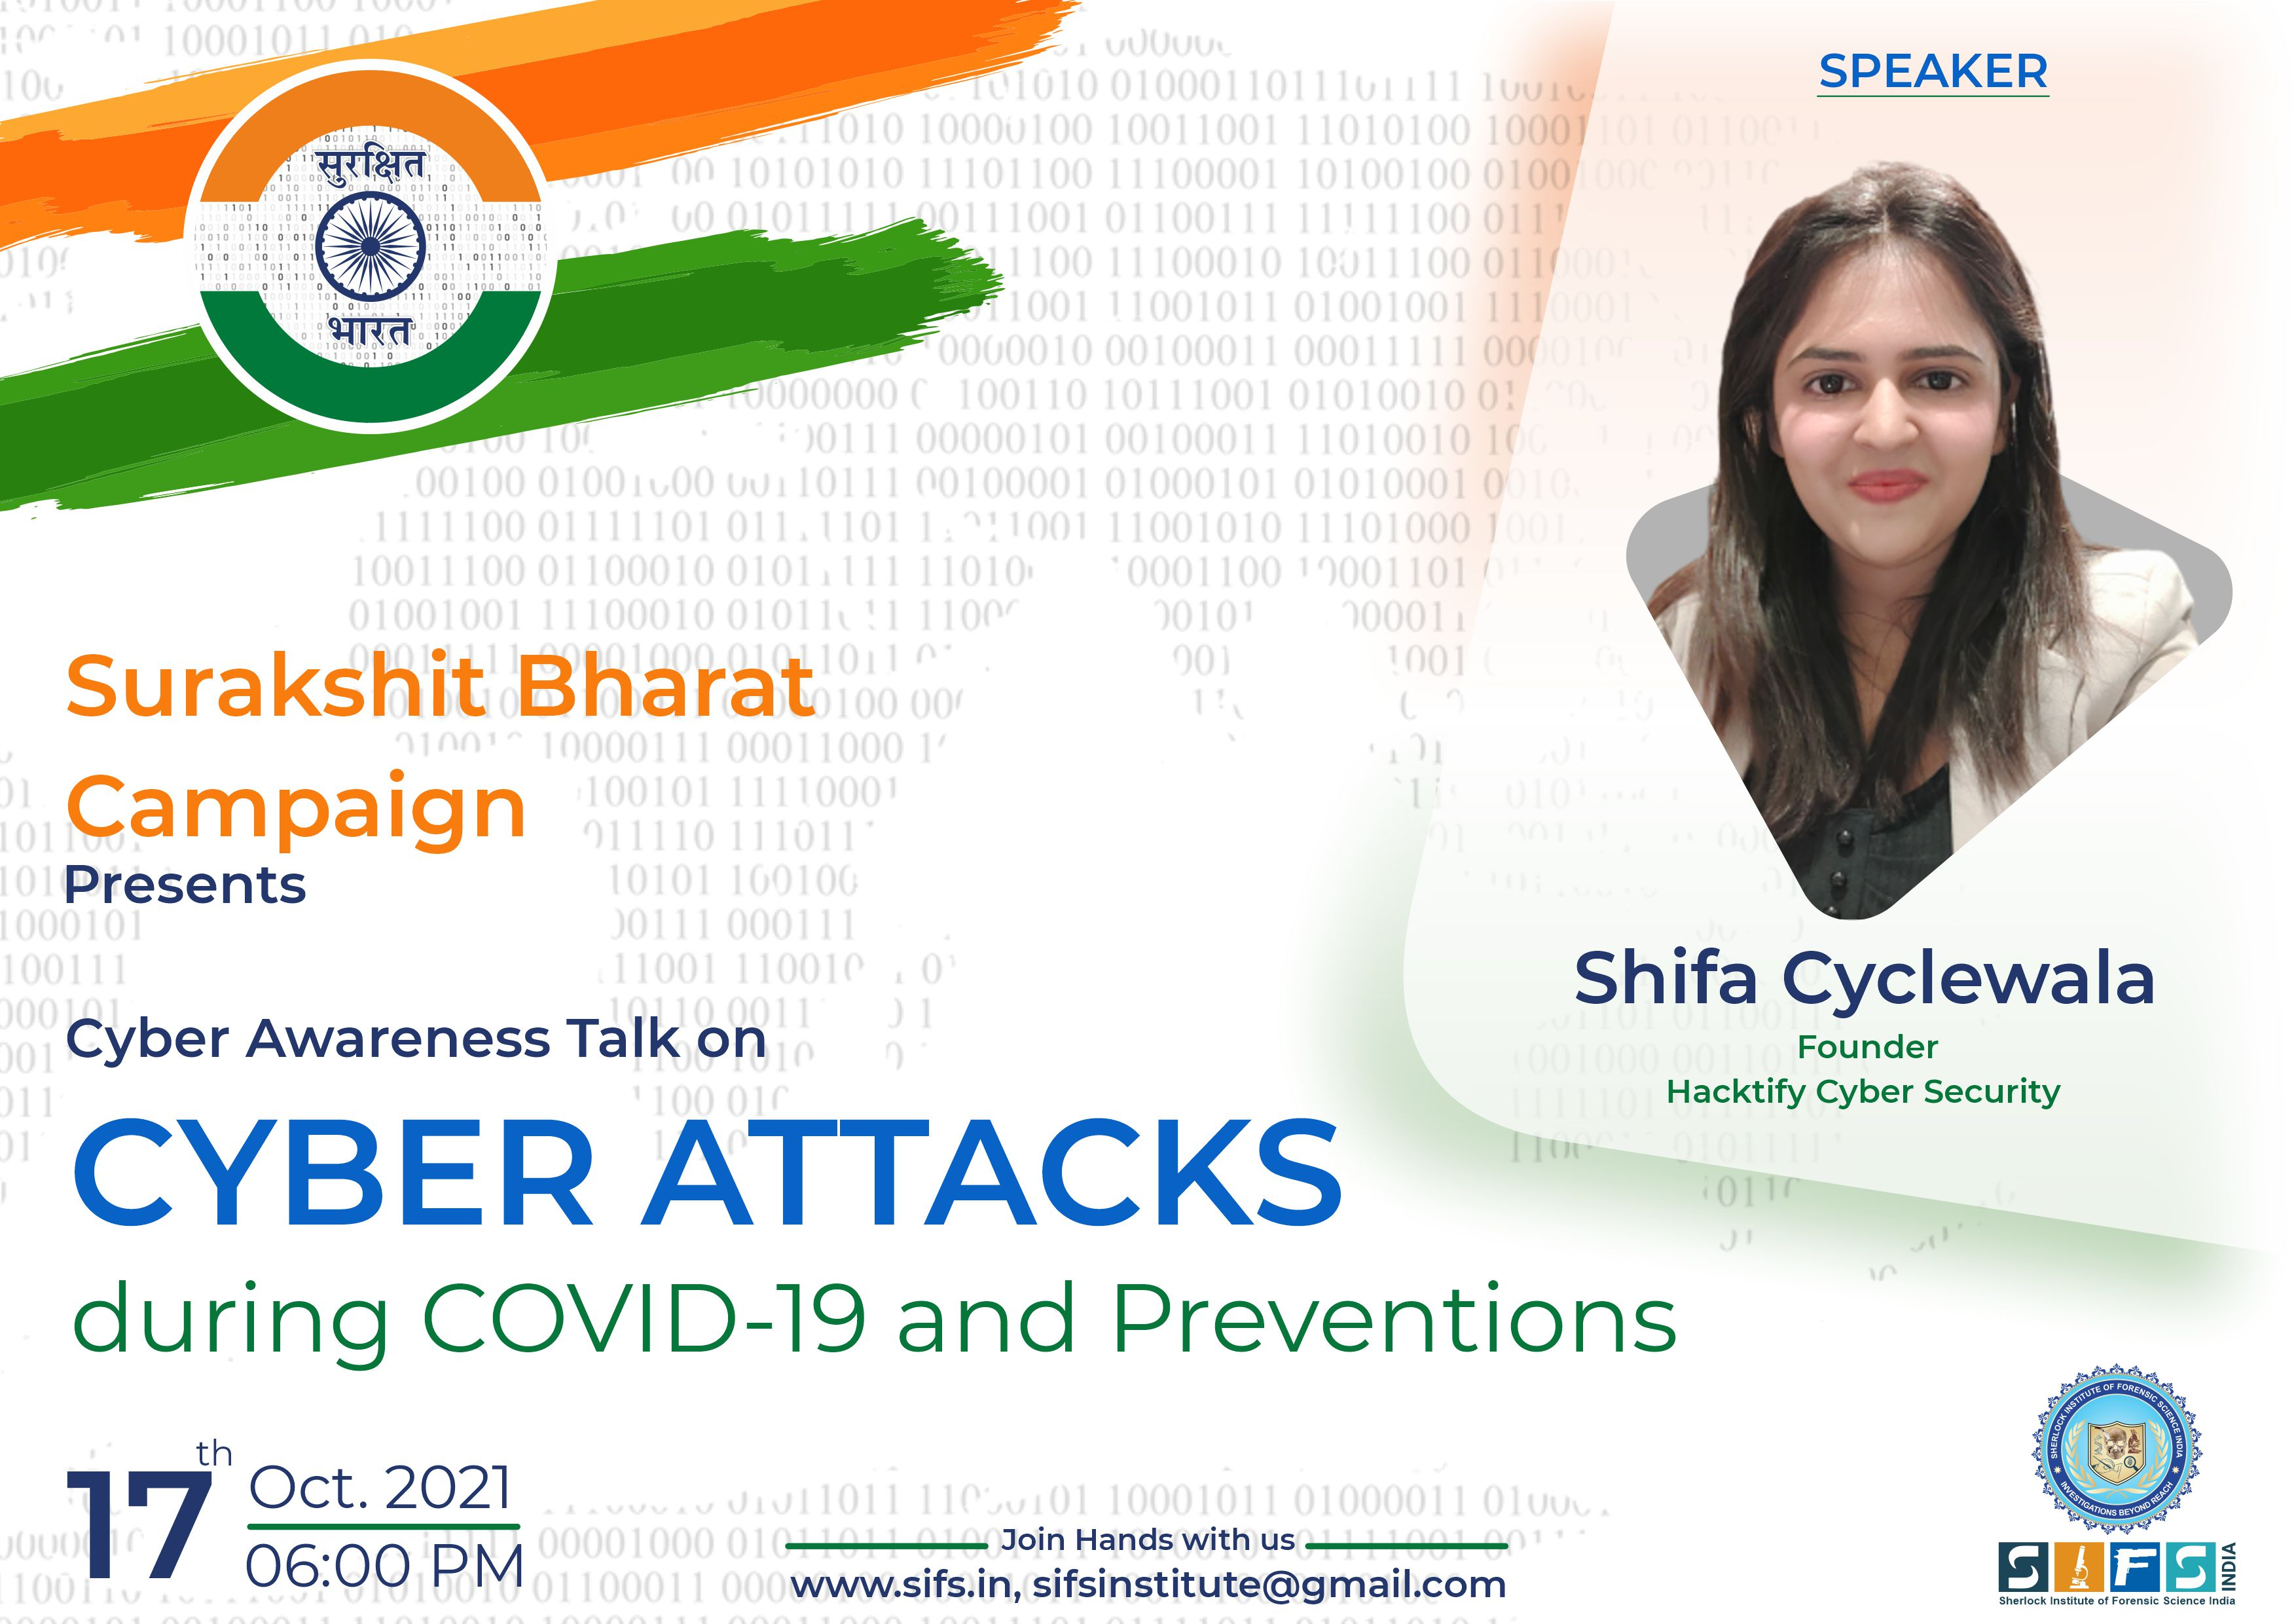 Cyber Attacks during COVID-19 and Preventions